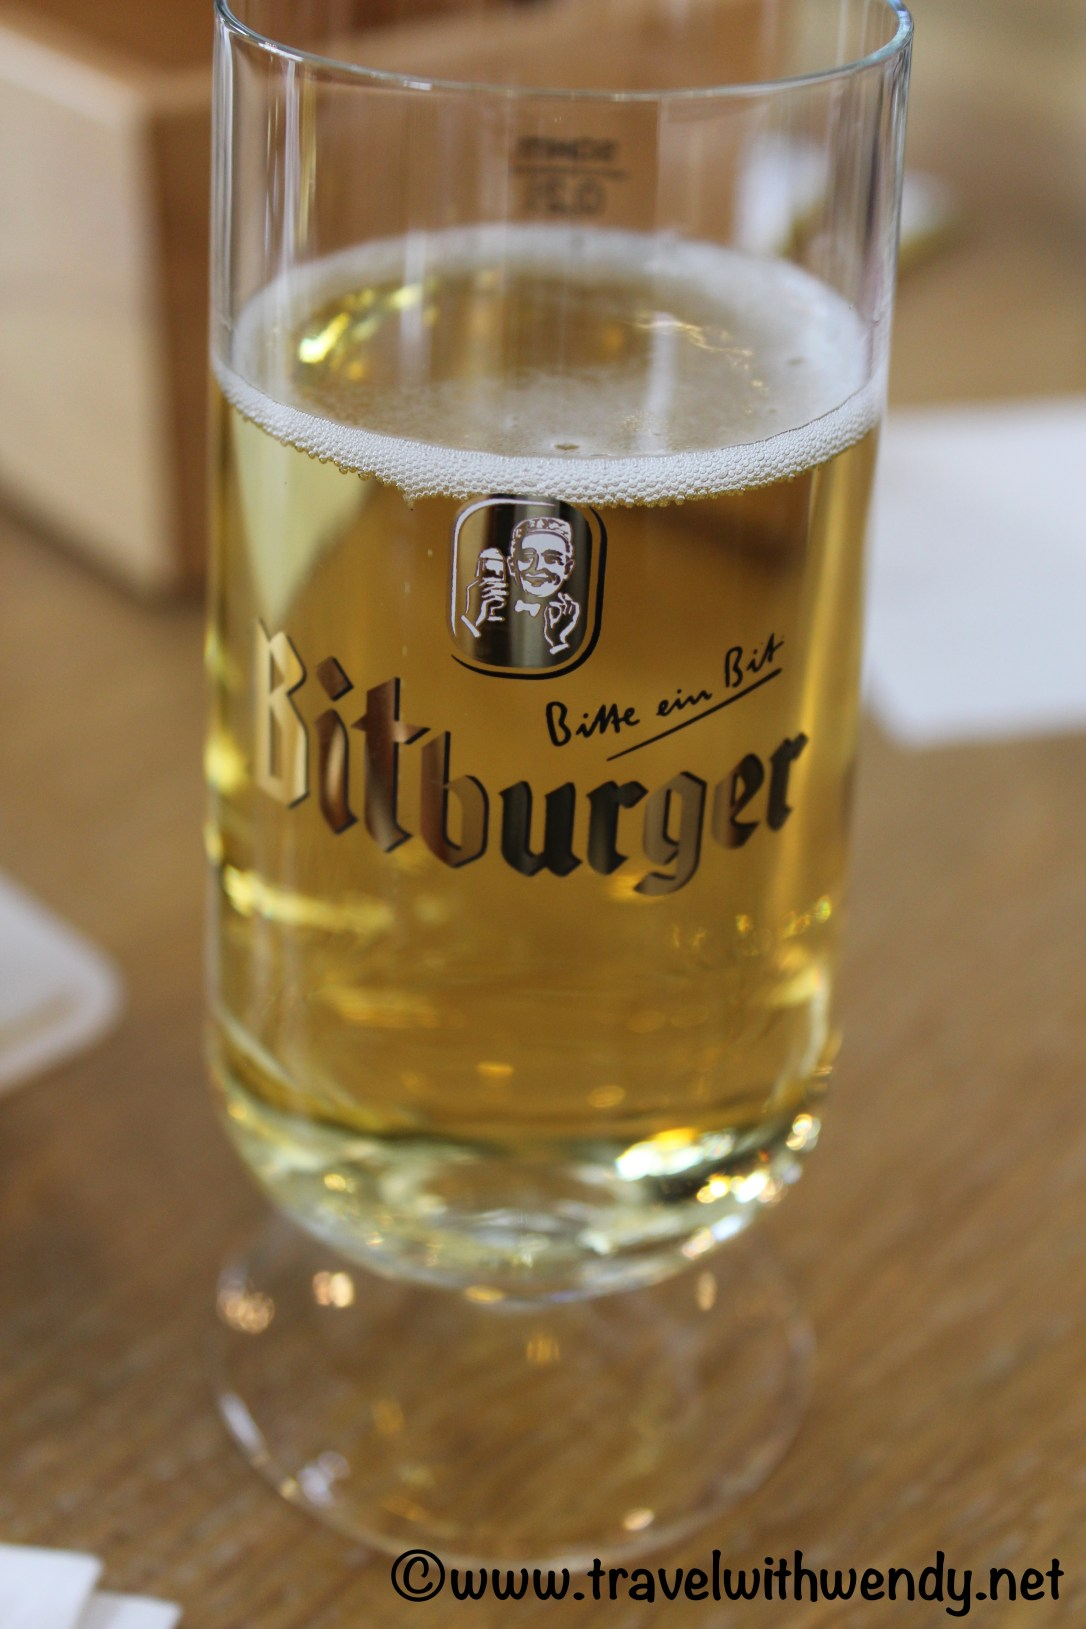 tww-bitburger-beer-www-travelwithwendy-net